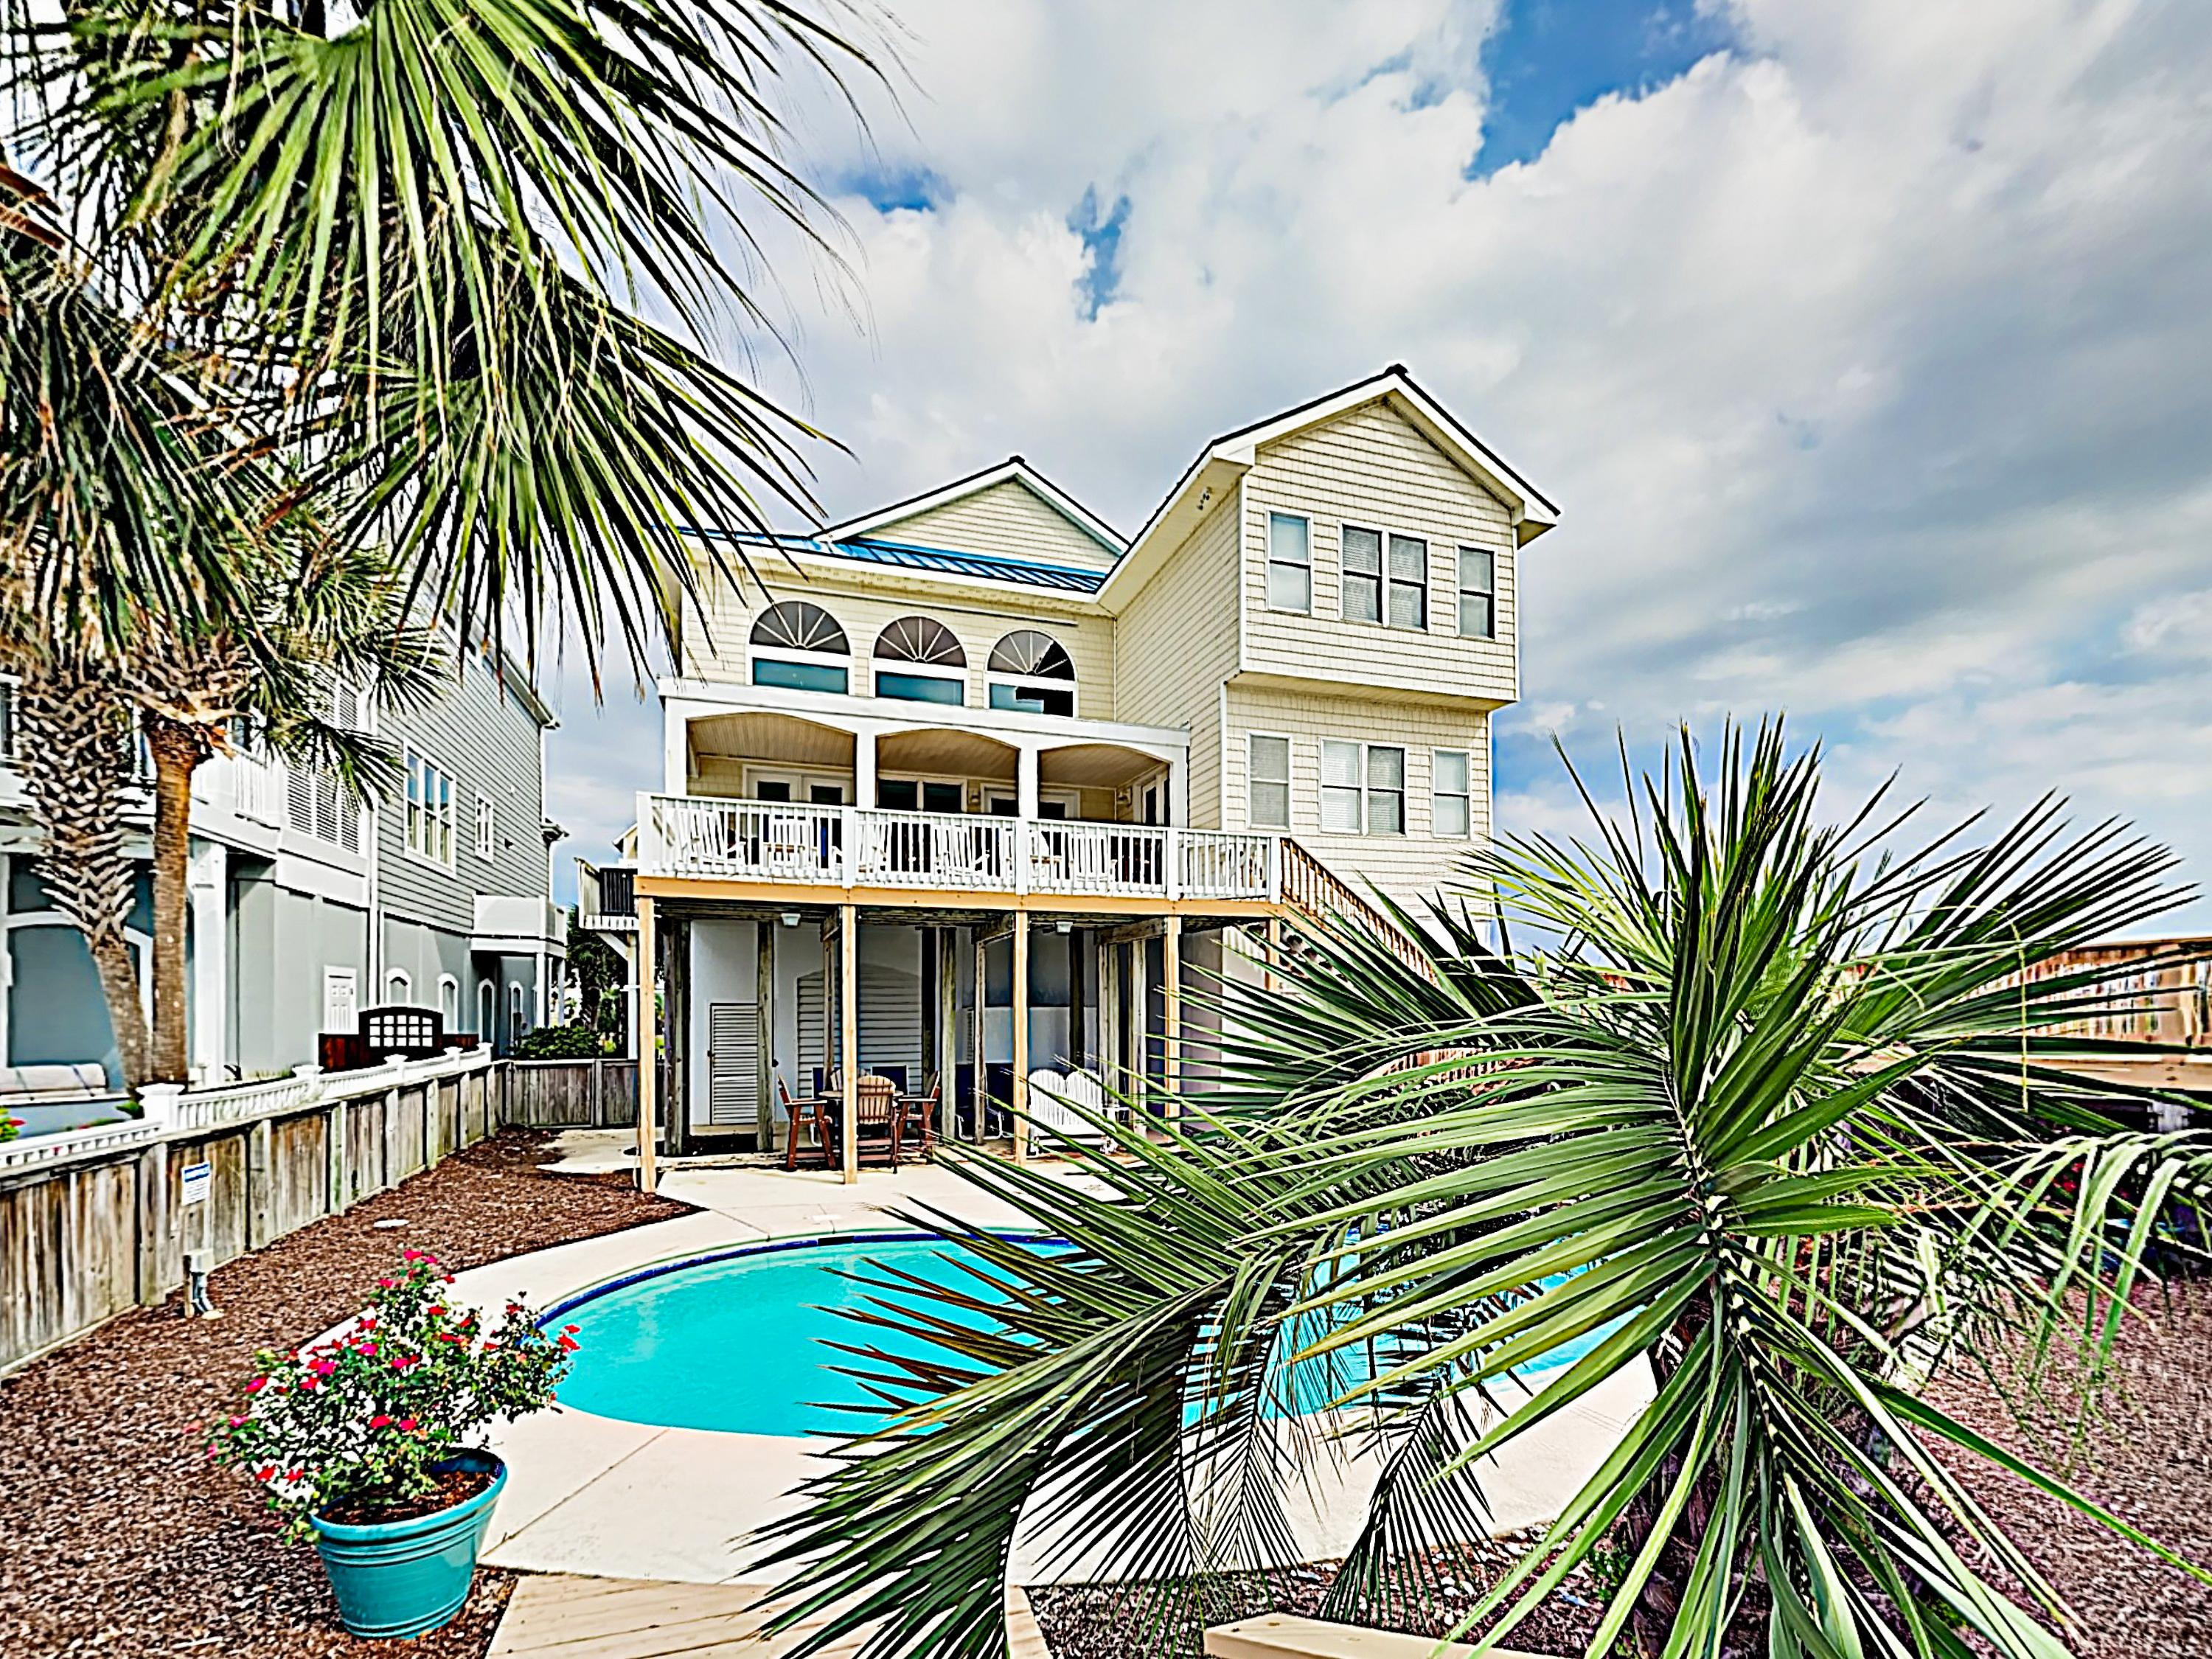 Welcome to Ocean Isle Beach! This home is professionally managed by TurnKey Vacation Rentals.